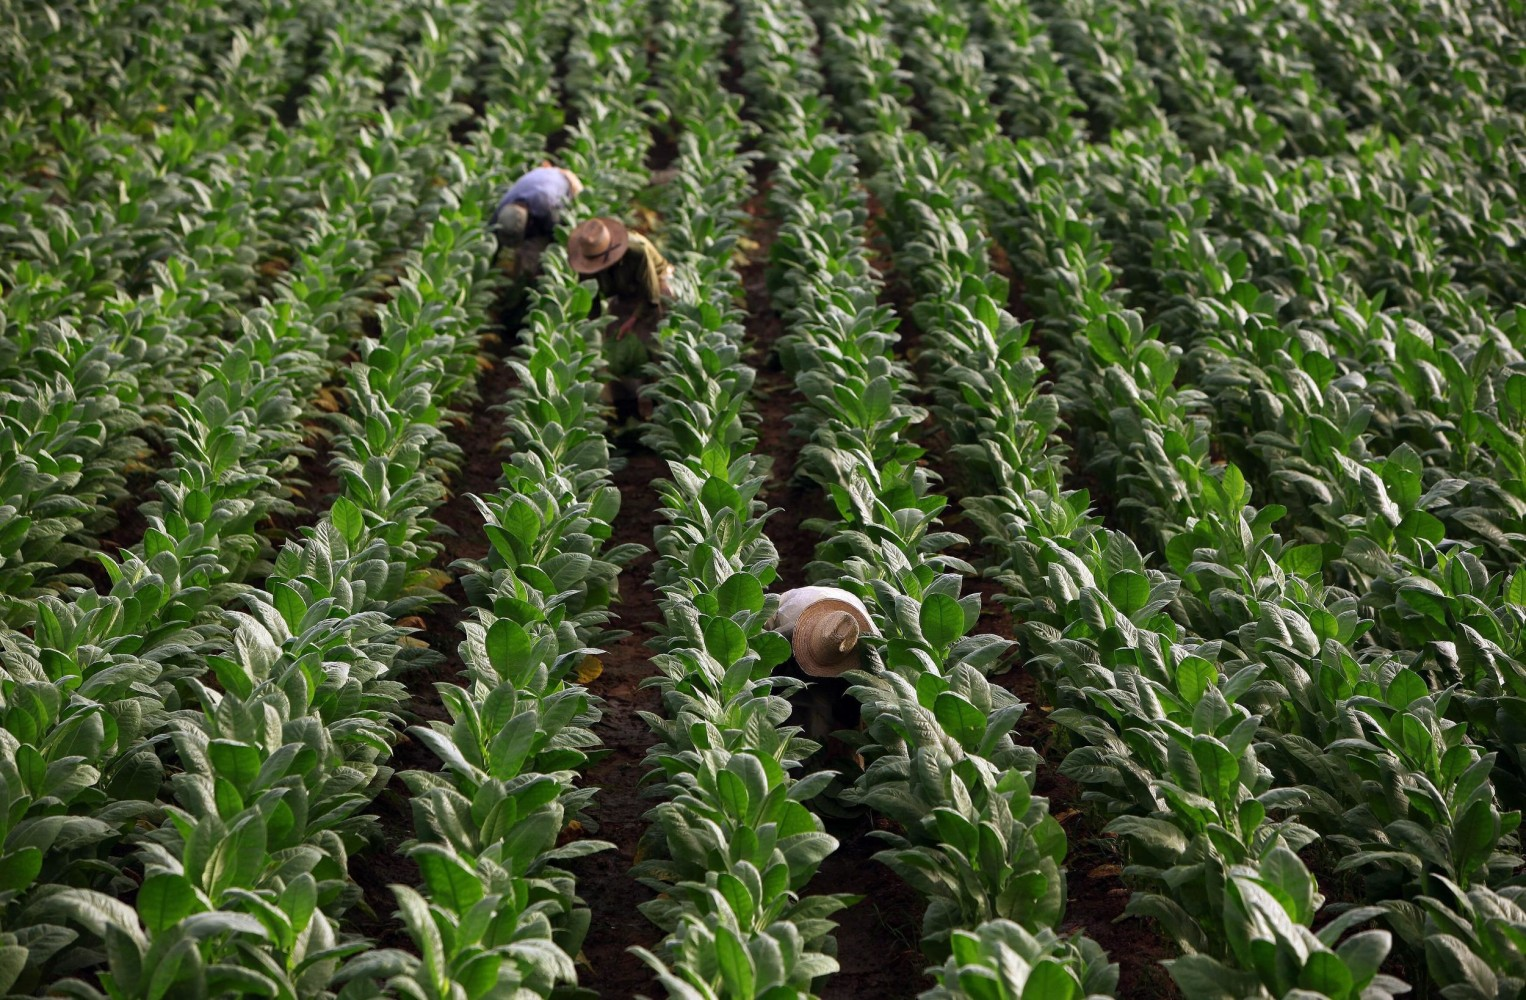 Children As Young As 7 Working Tobacco Farms, Report Says ...